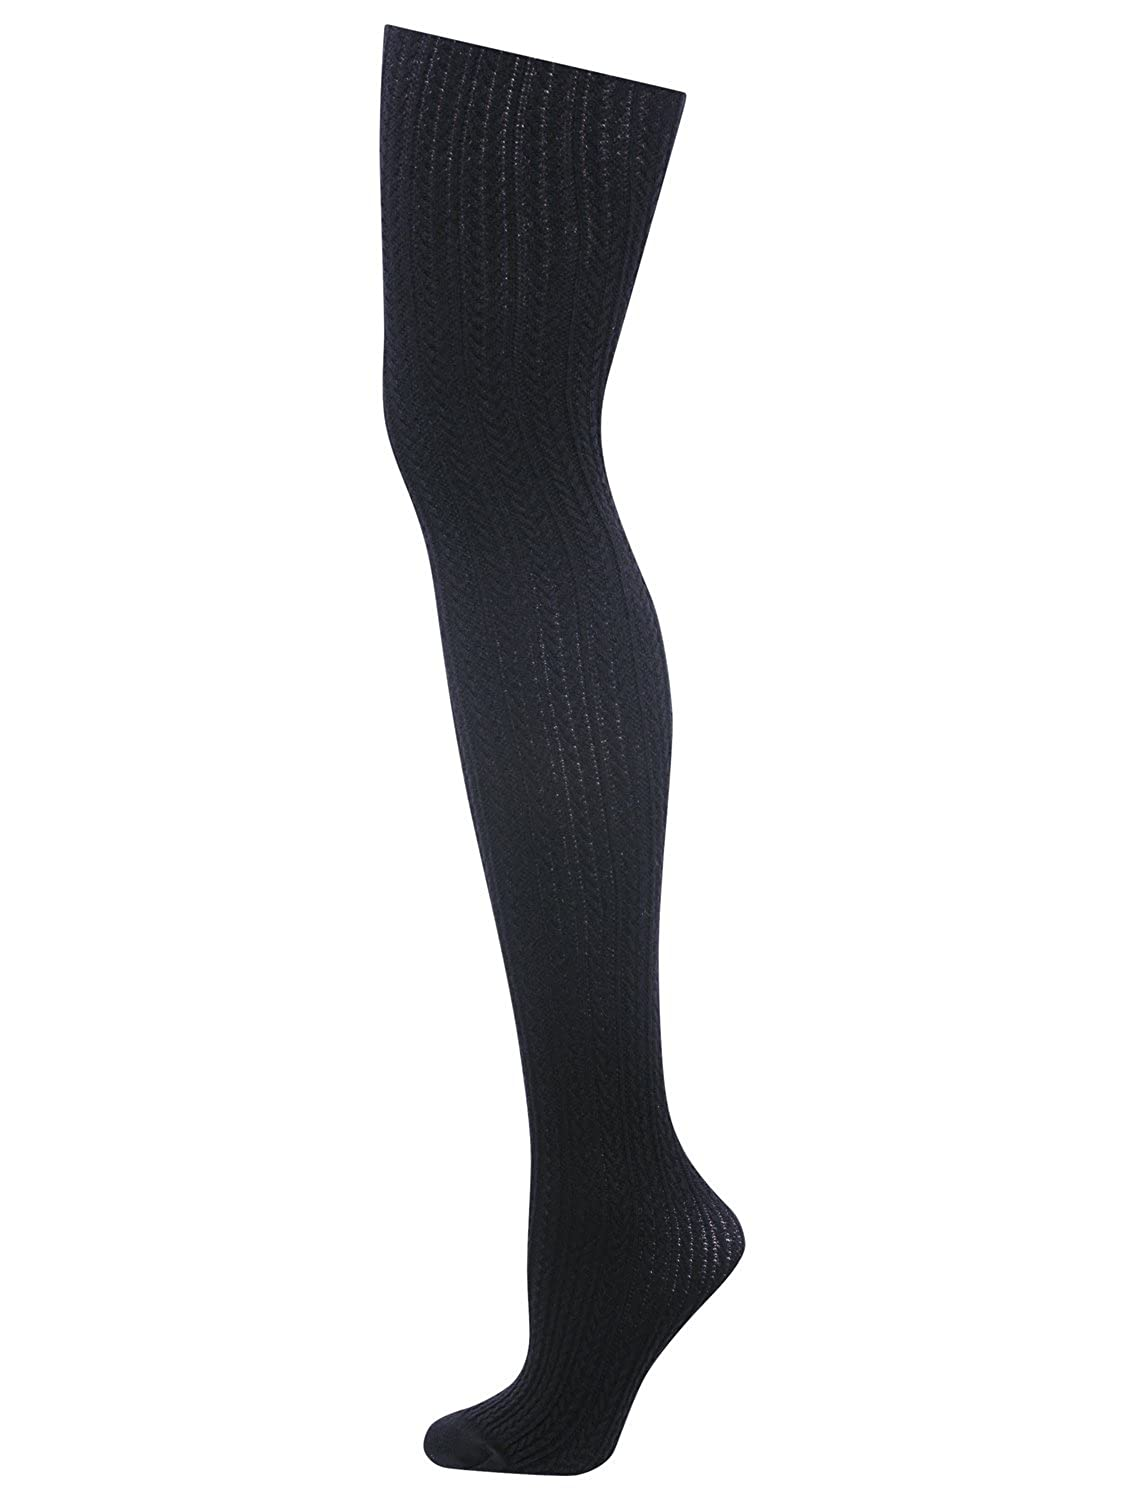 M& Co Ladies Cosy And Warm Cable Knit Plain Coloured Comfort Fit Tights